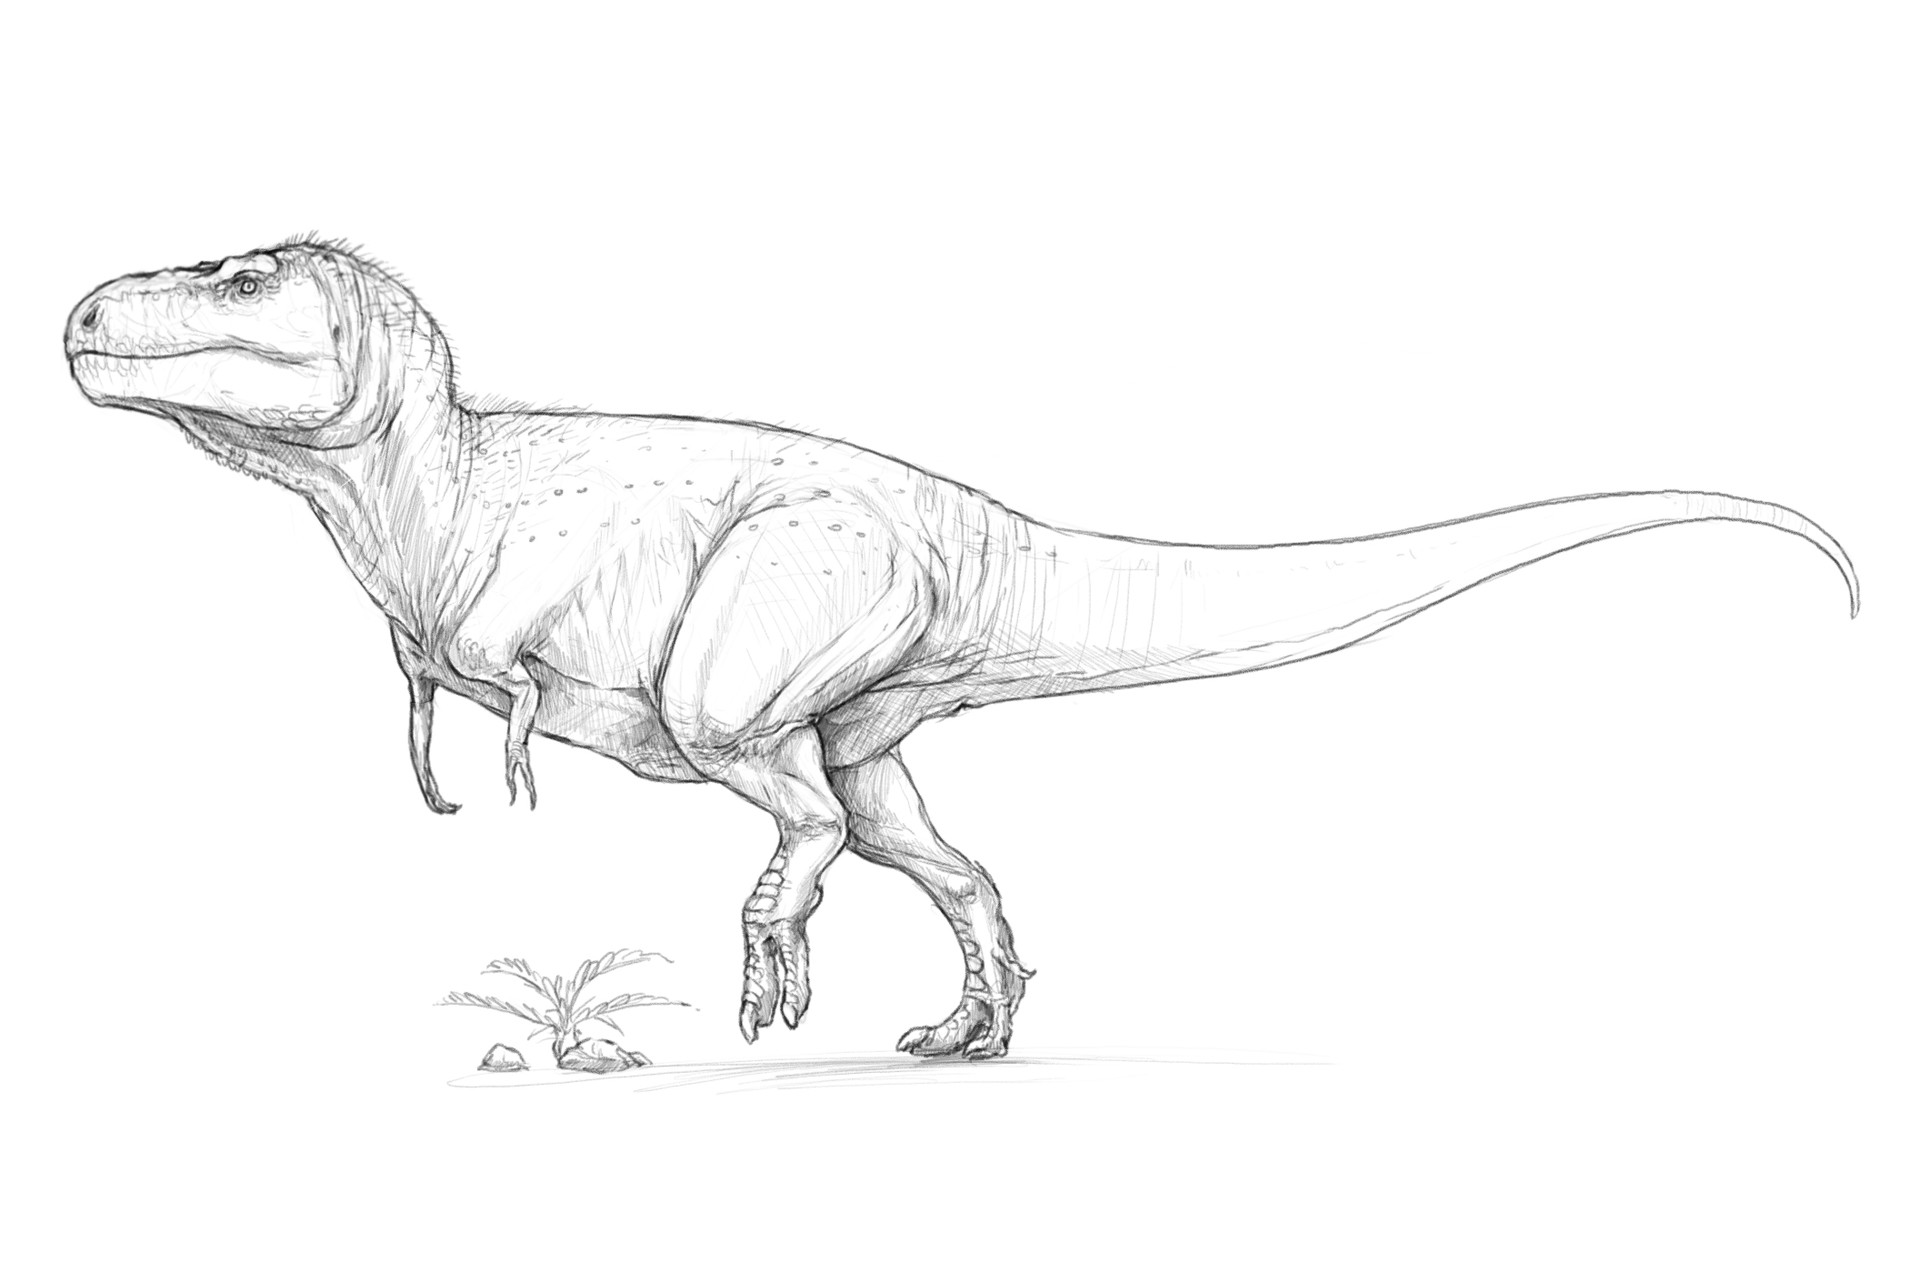 how to draw a t rex how to draw a tyrannosaurus rex t rex youtube how rex a t draw to